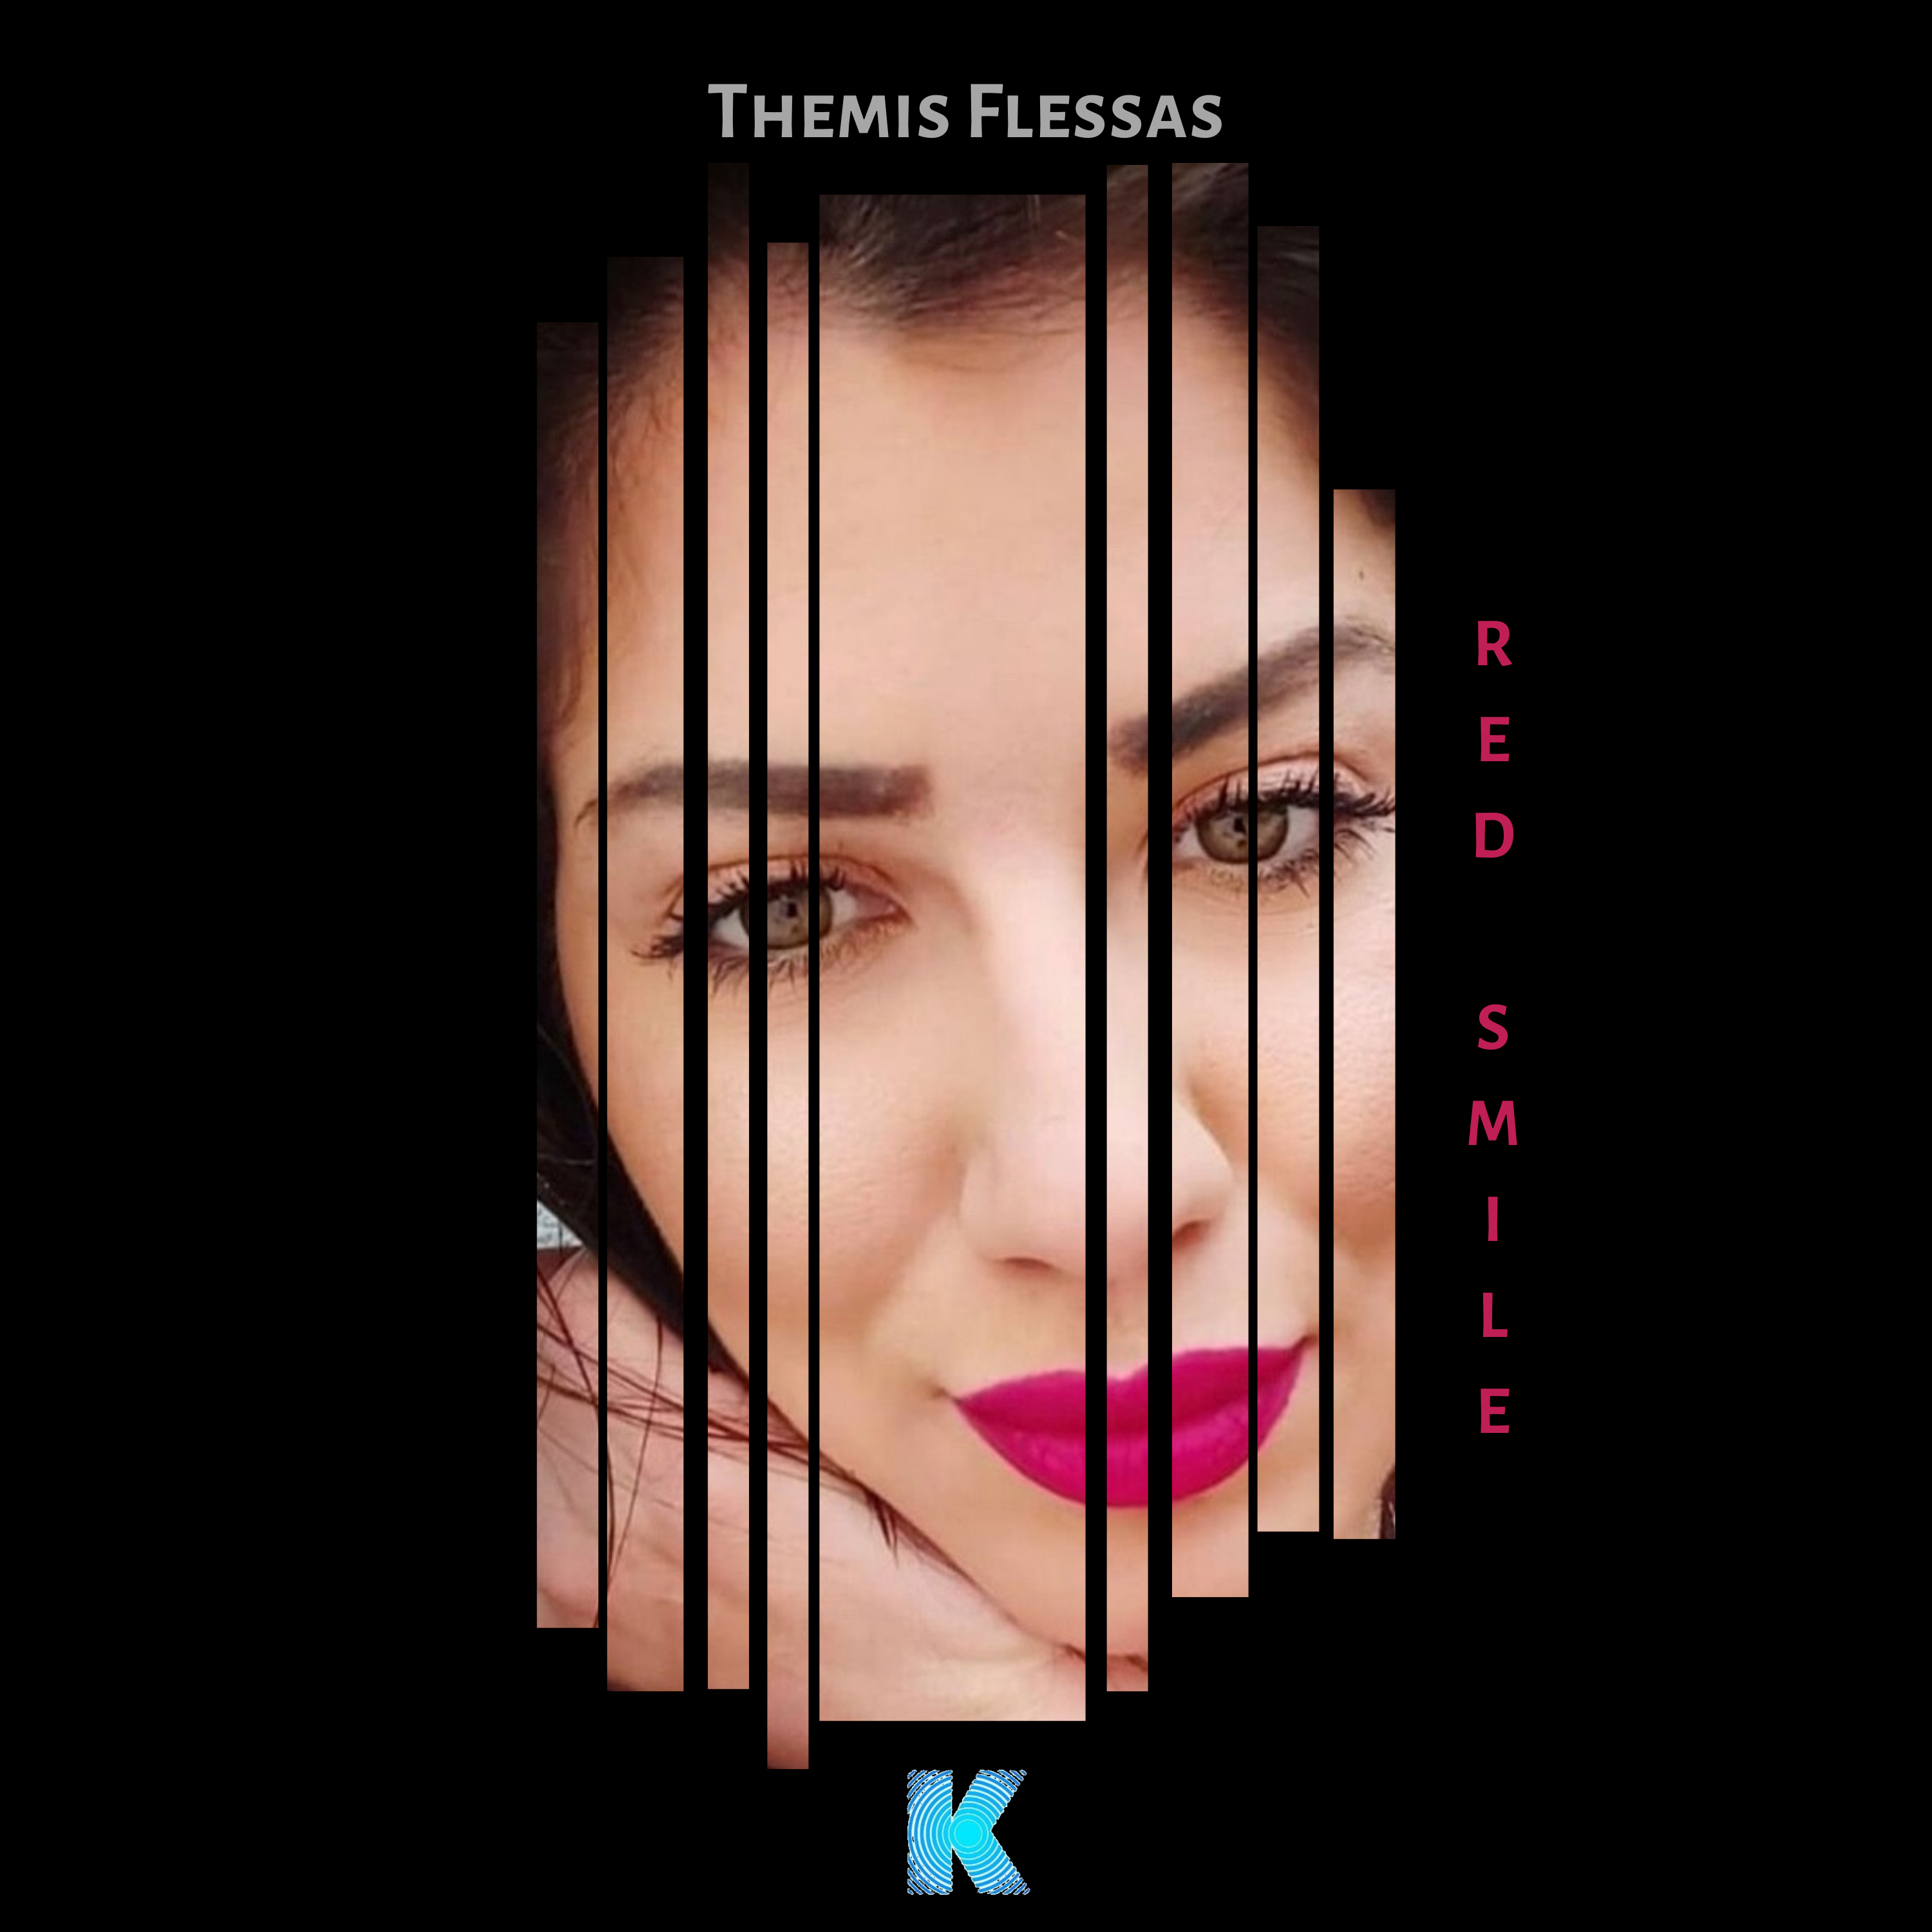 Themis Flessas announce new single 'Red Smile' end of year via Karia  Records., 2020